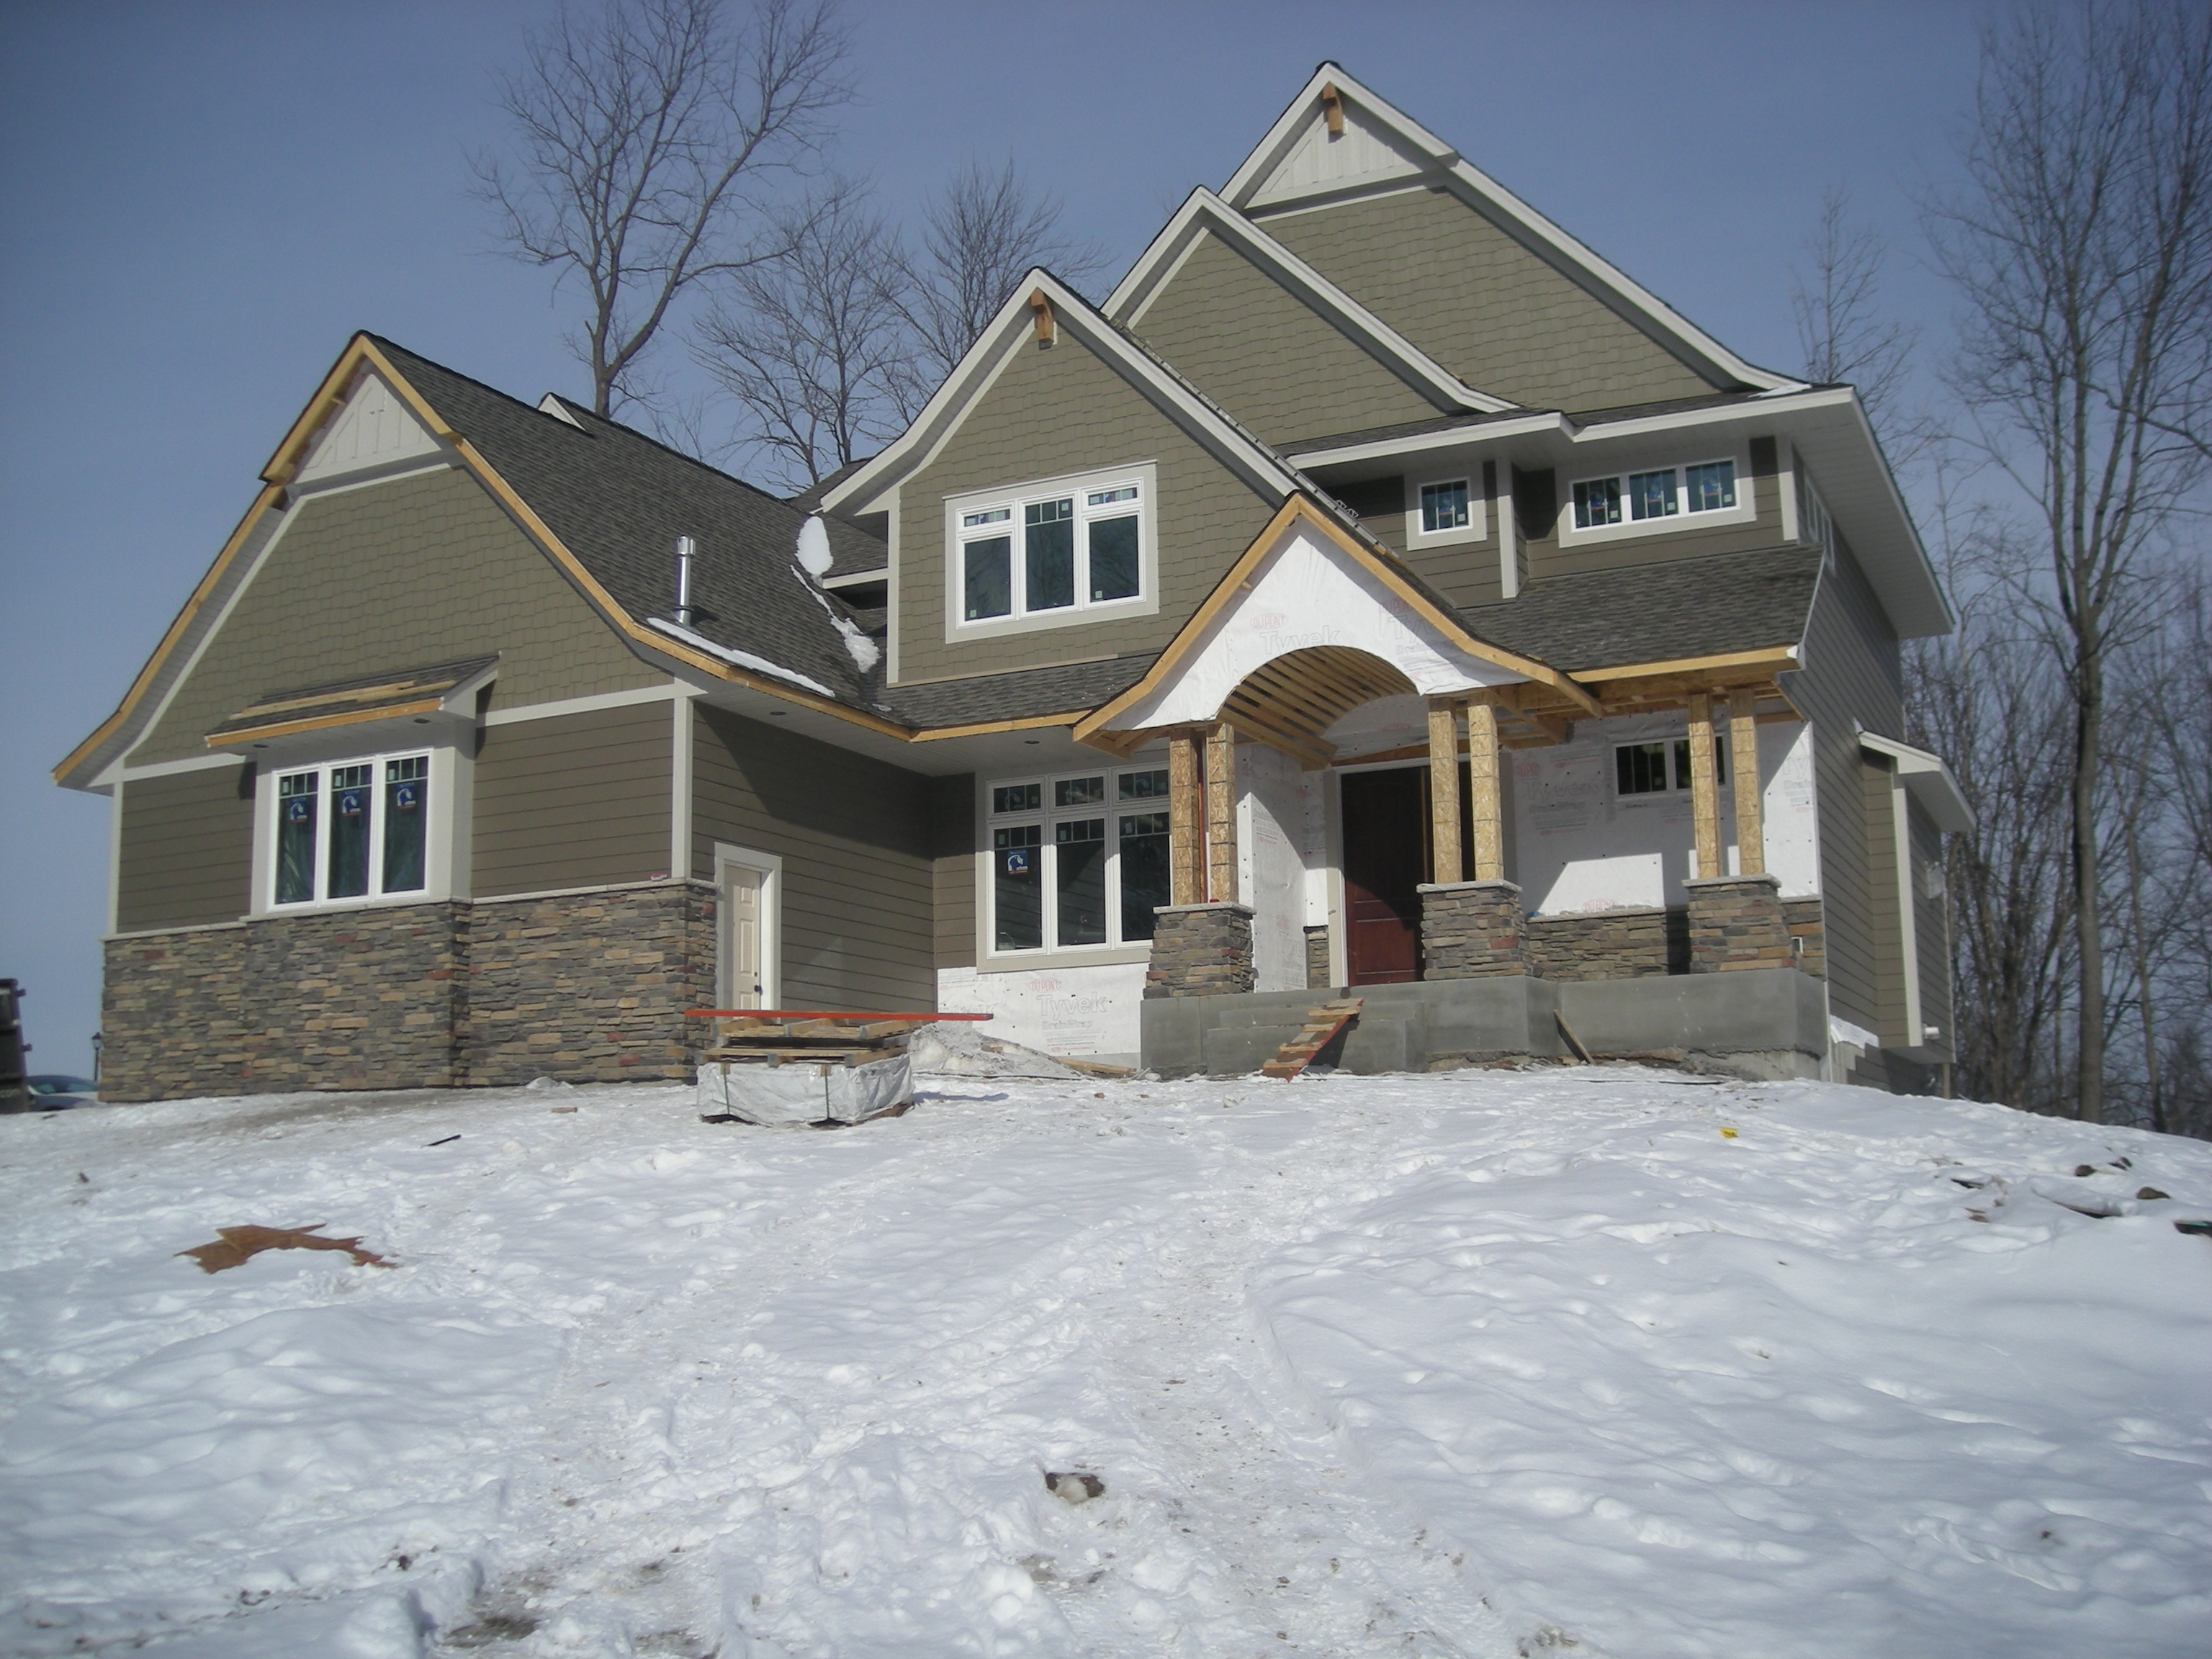 Update on construction of new home in taylor creek of for Building a house in mn